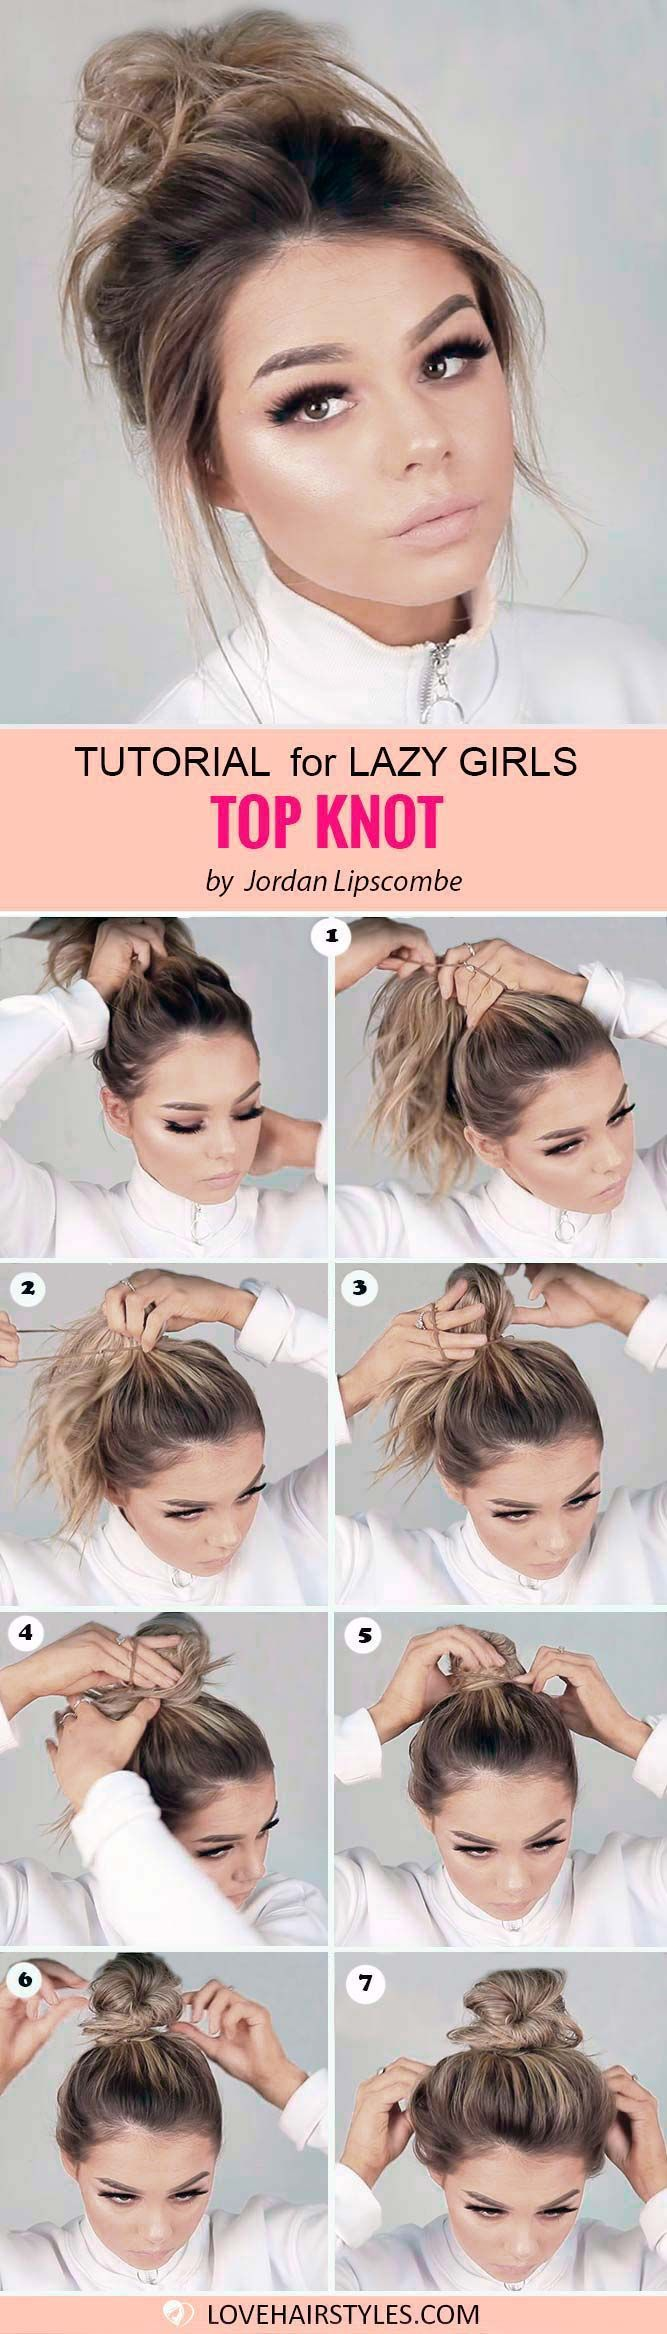 Easy hairstyles for medium hair exist – lazy ladies, it is time to rejoice! Has it ever occurred to you that you are entirely bored of that same way...